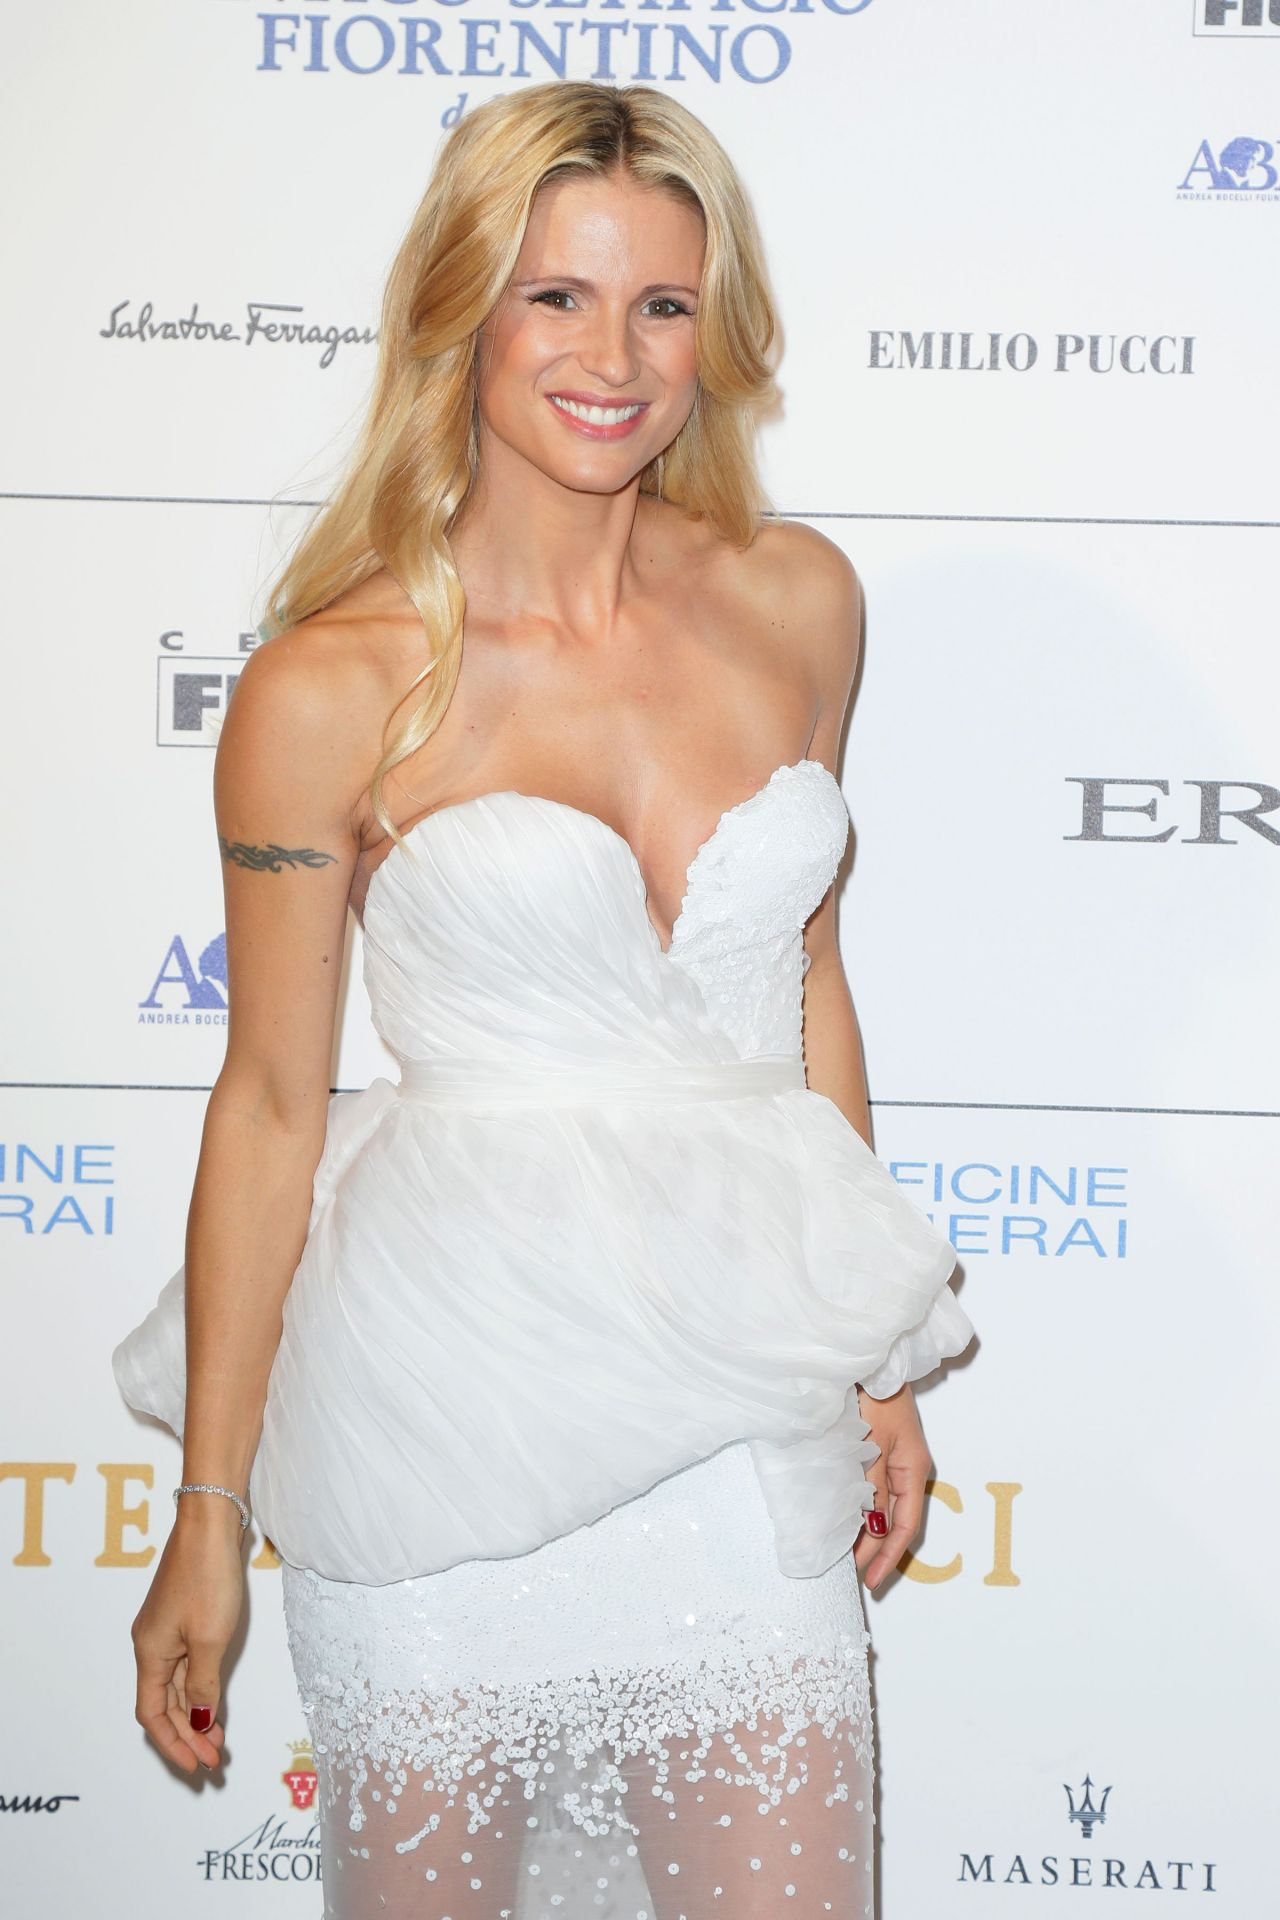 September 2014 Issue: Celebrity Fight Night In Florence